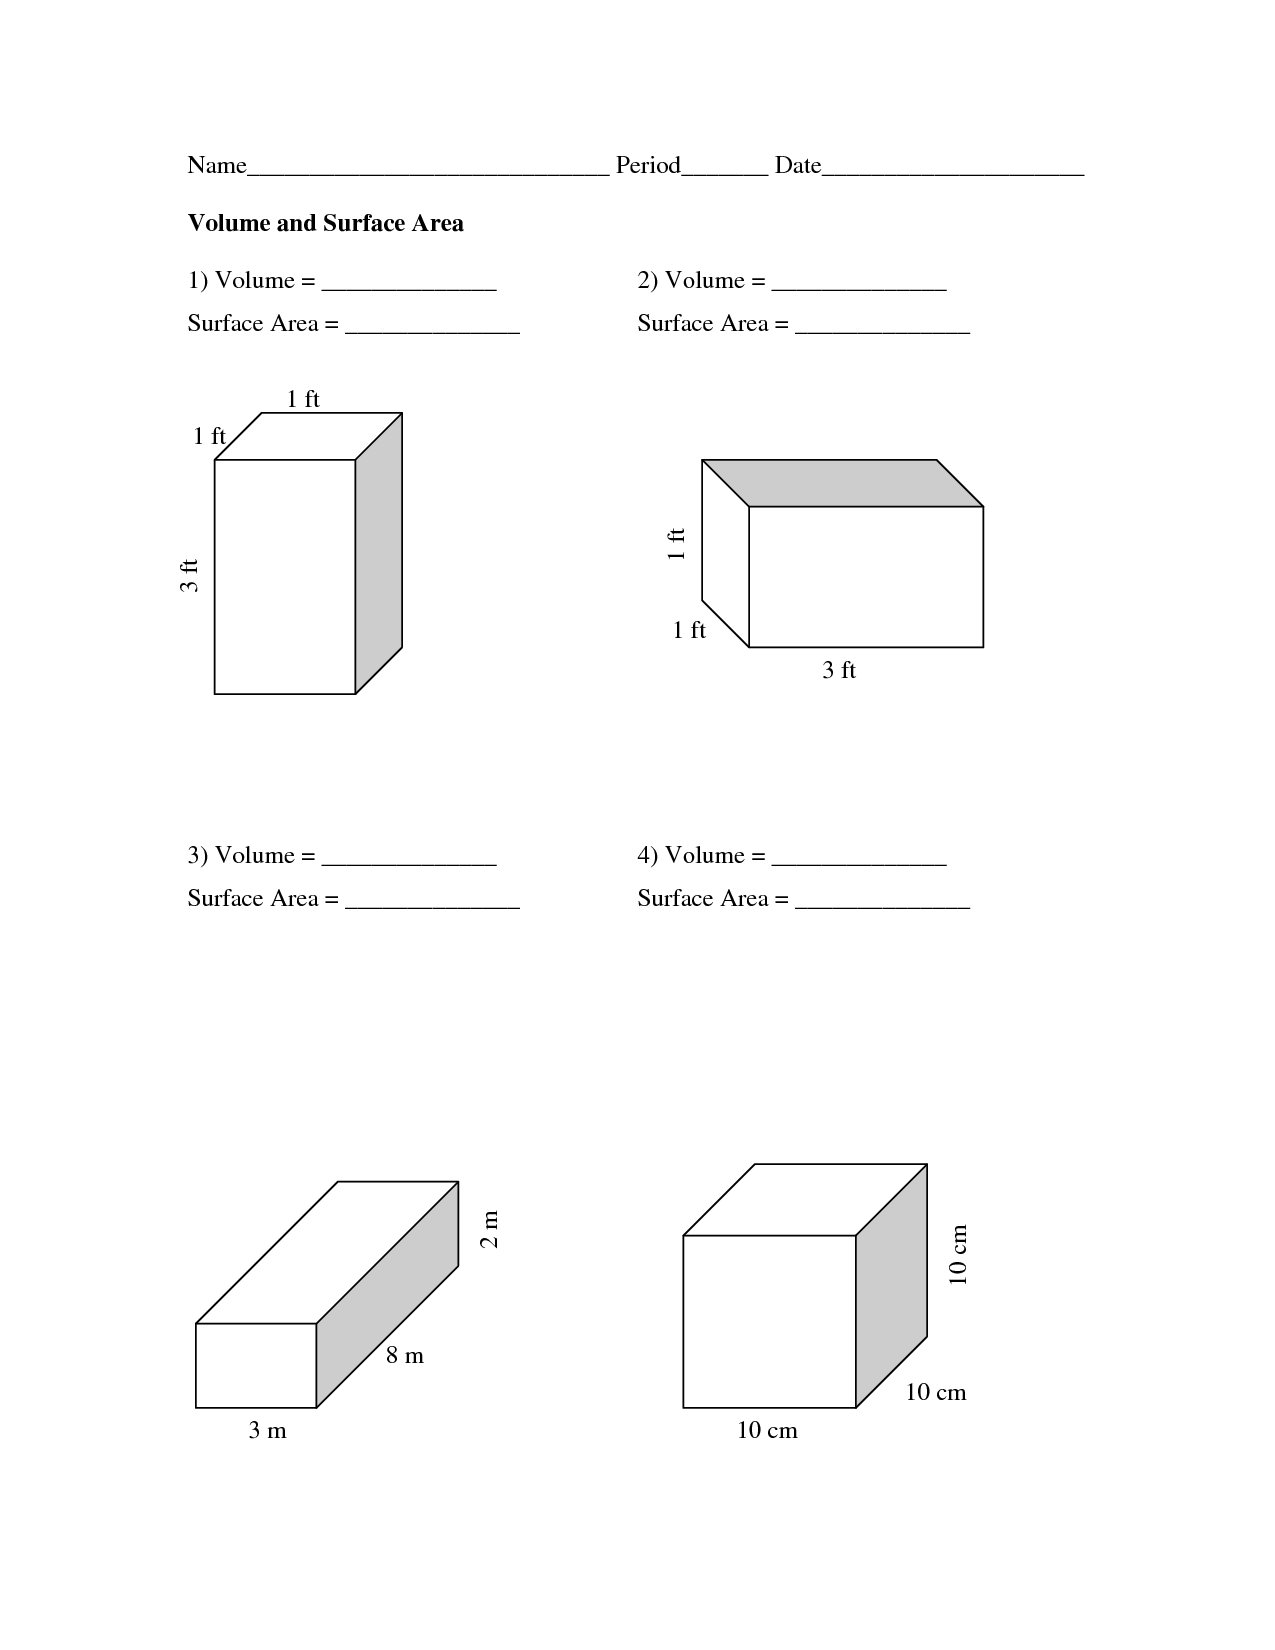 Worksheet Surface Area Worksheet surface area and volume worksheet hypeelite 1000 images about school on pinterest plastic spoons of a worksheets surface